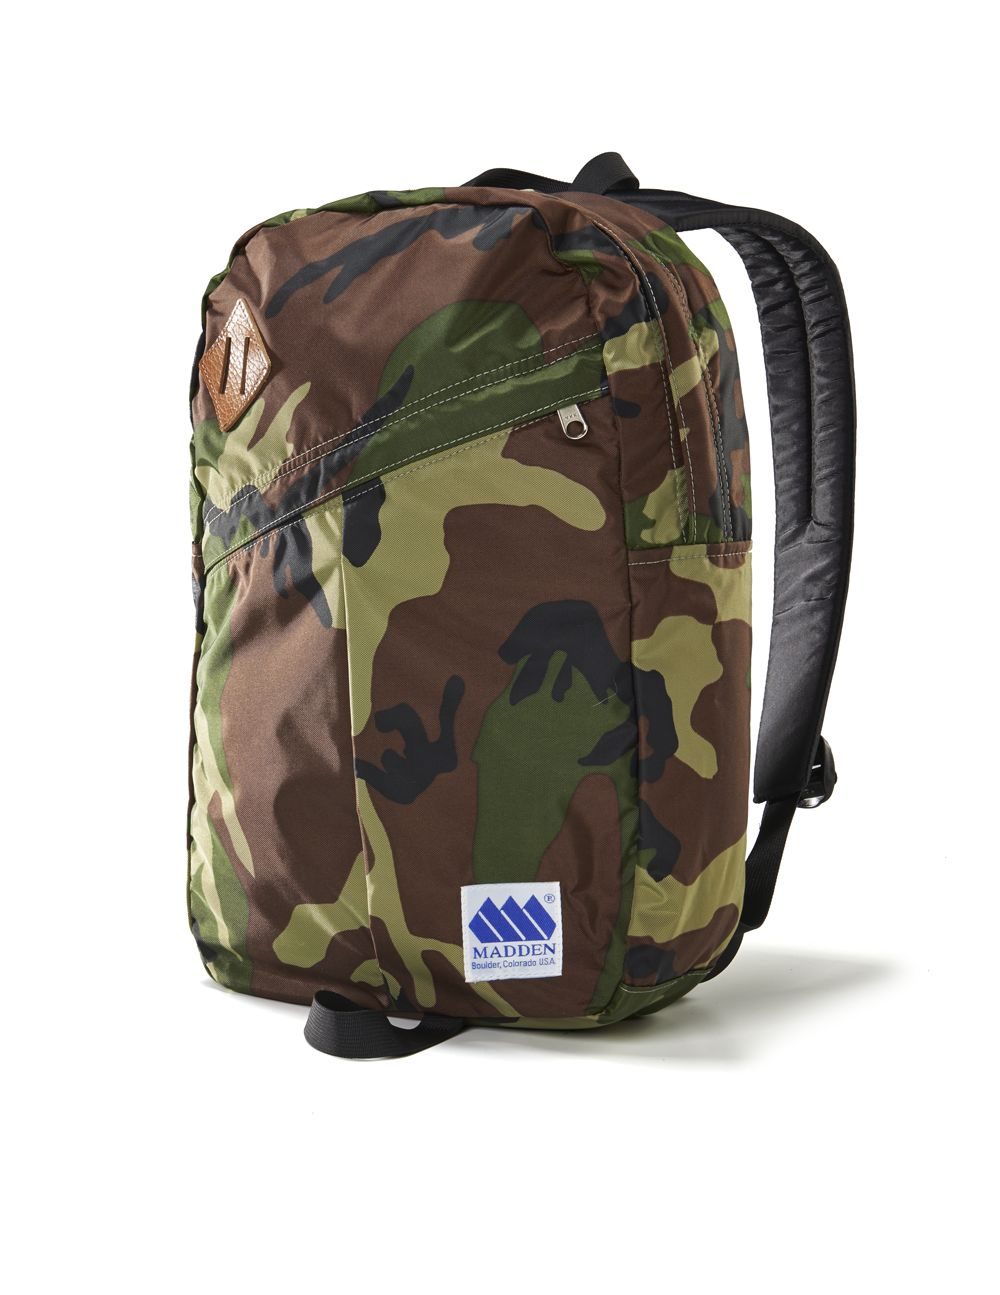 Dan's Pack: This design is one of Dan Madden's personal packs